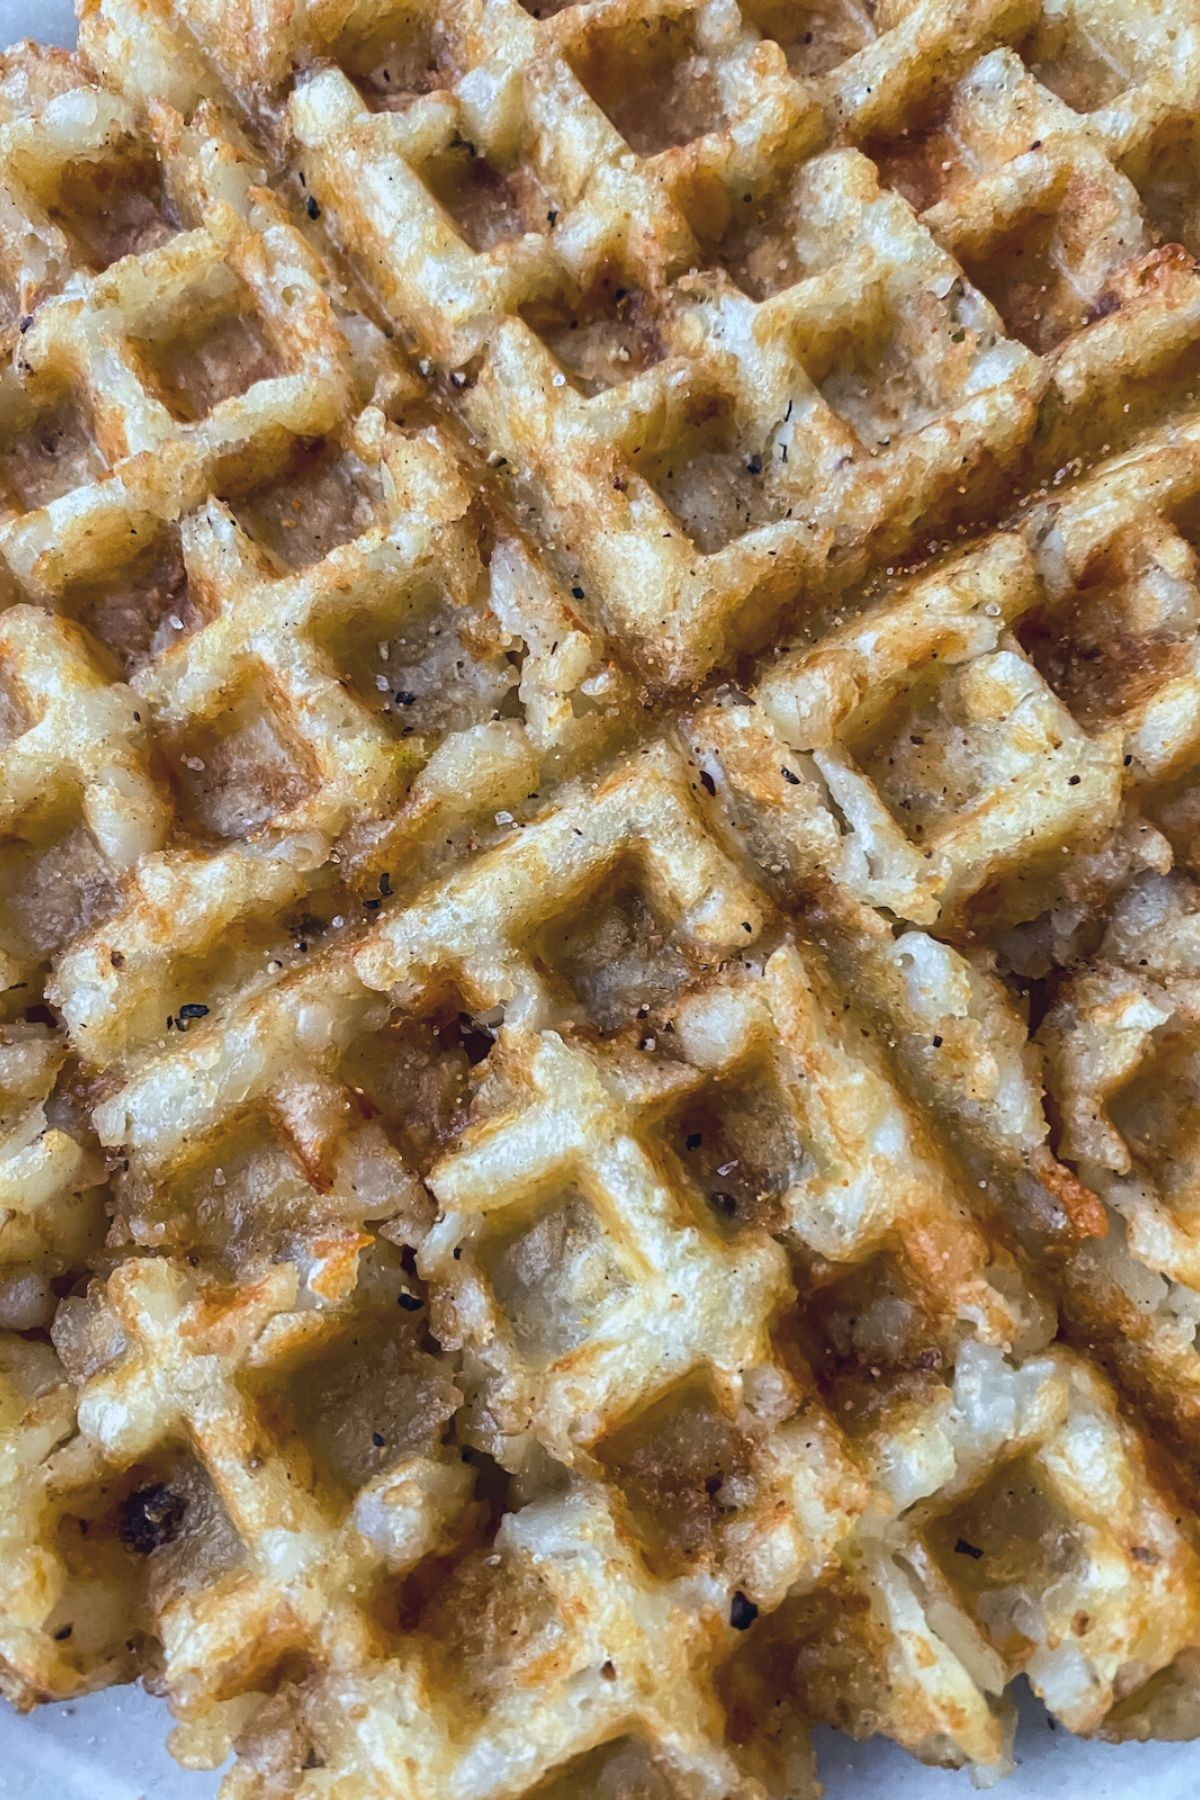 Waffle made of tater tots on plate up close